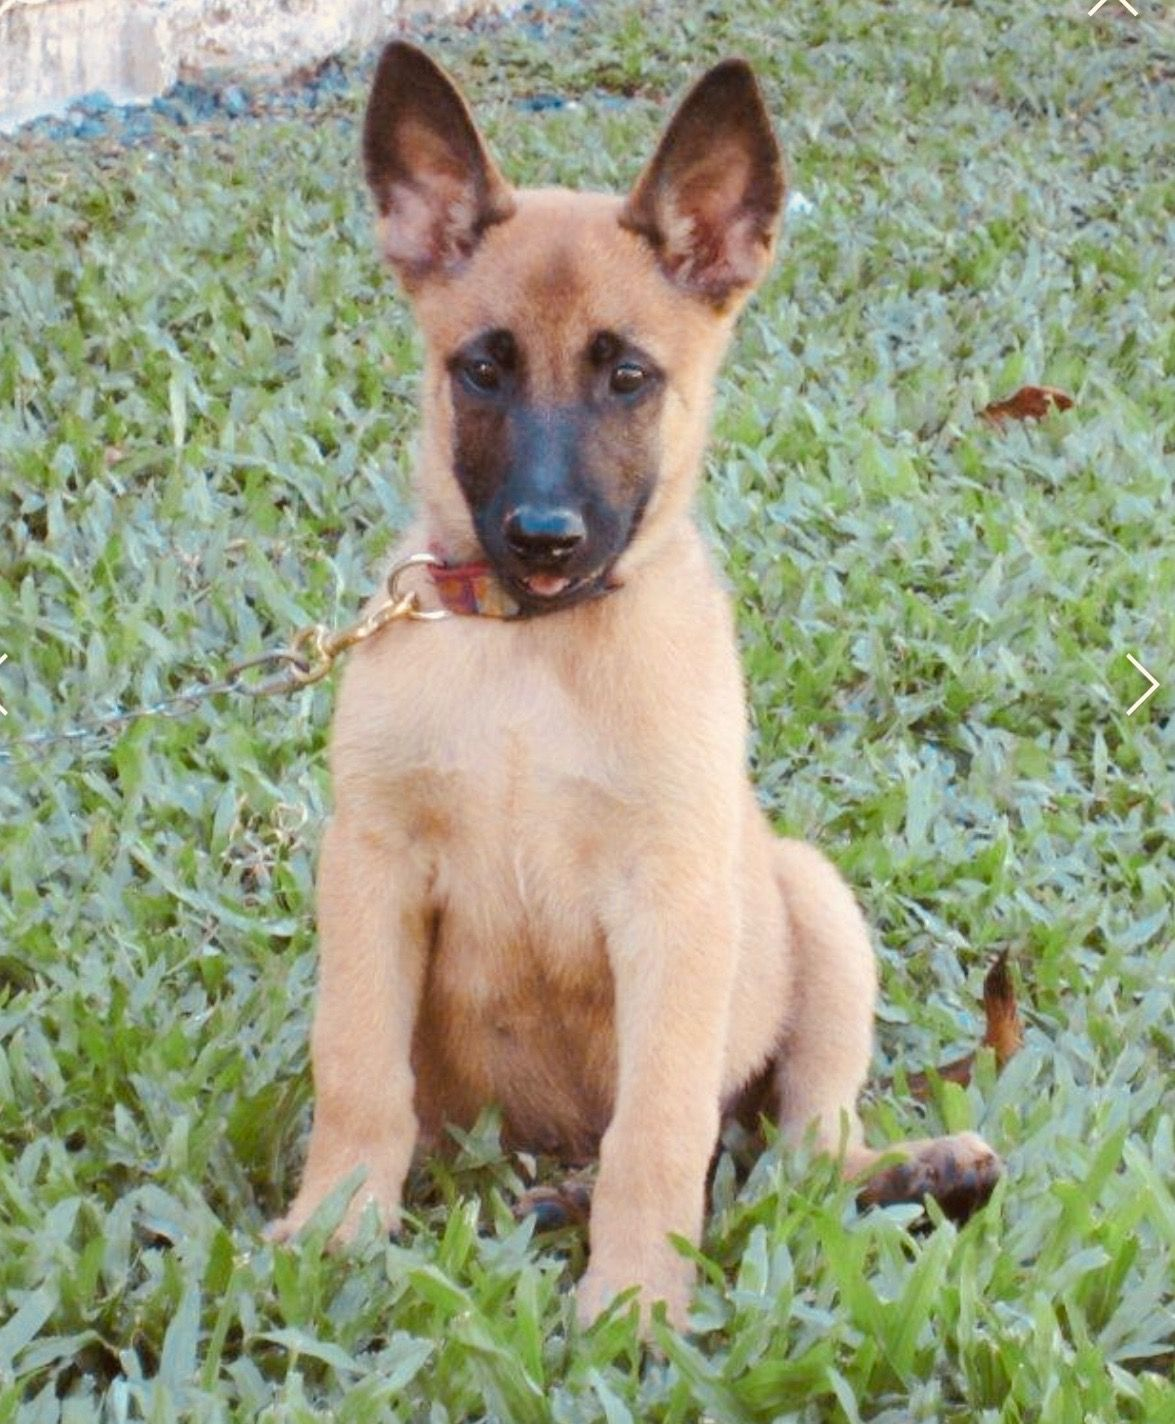 Belgium Malinois Puppy Sable With Black Mask Www Wolfsbanek9 Com Belgian Malinois Puppies Malinois Puppies Malinois Dog